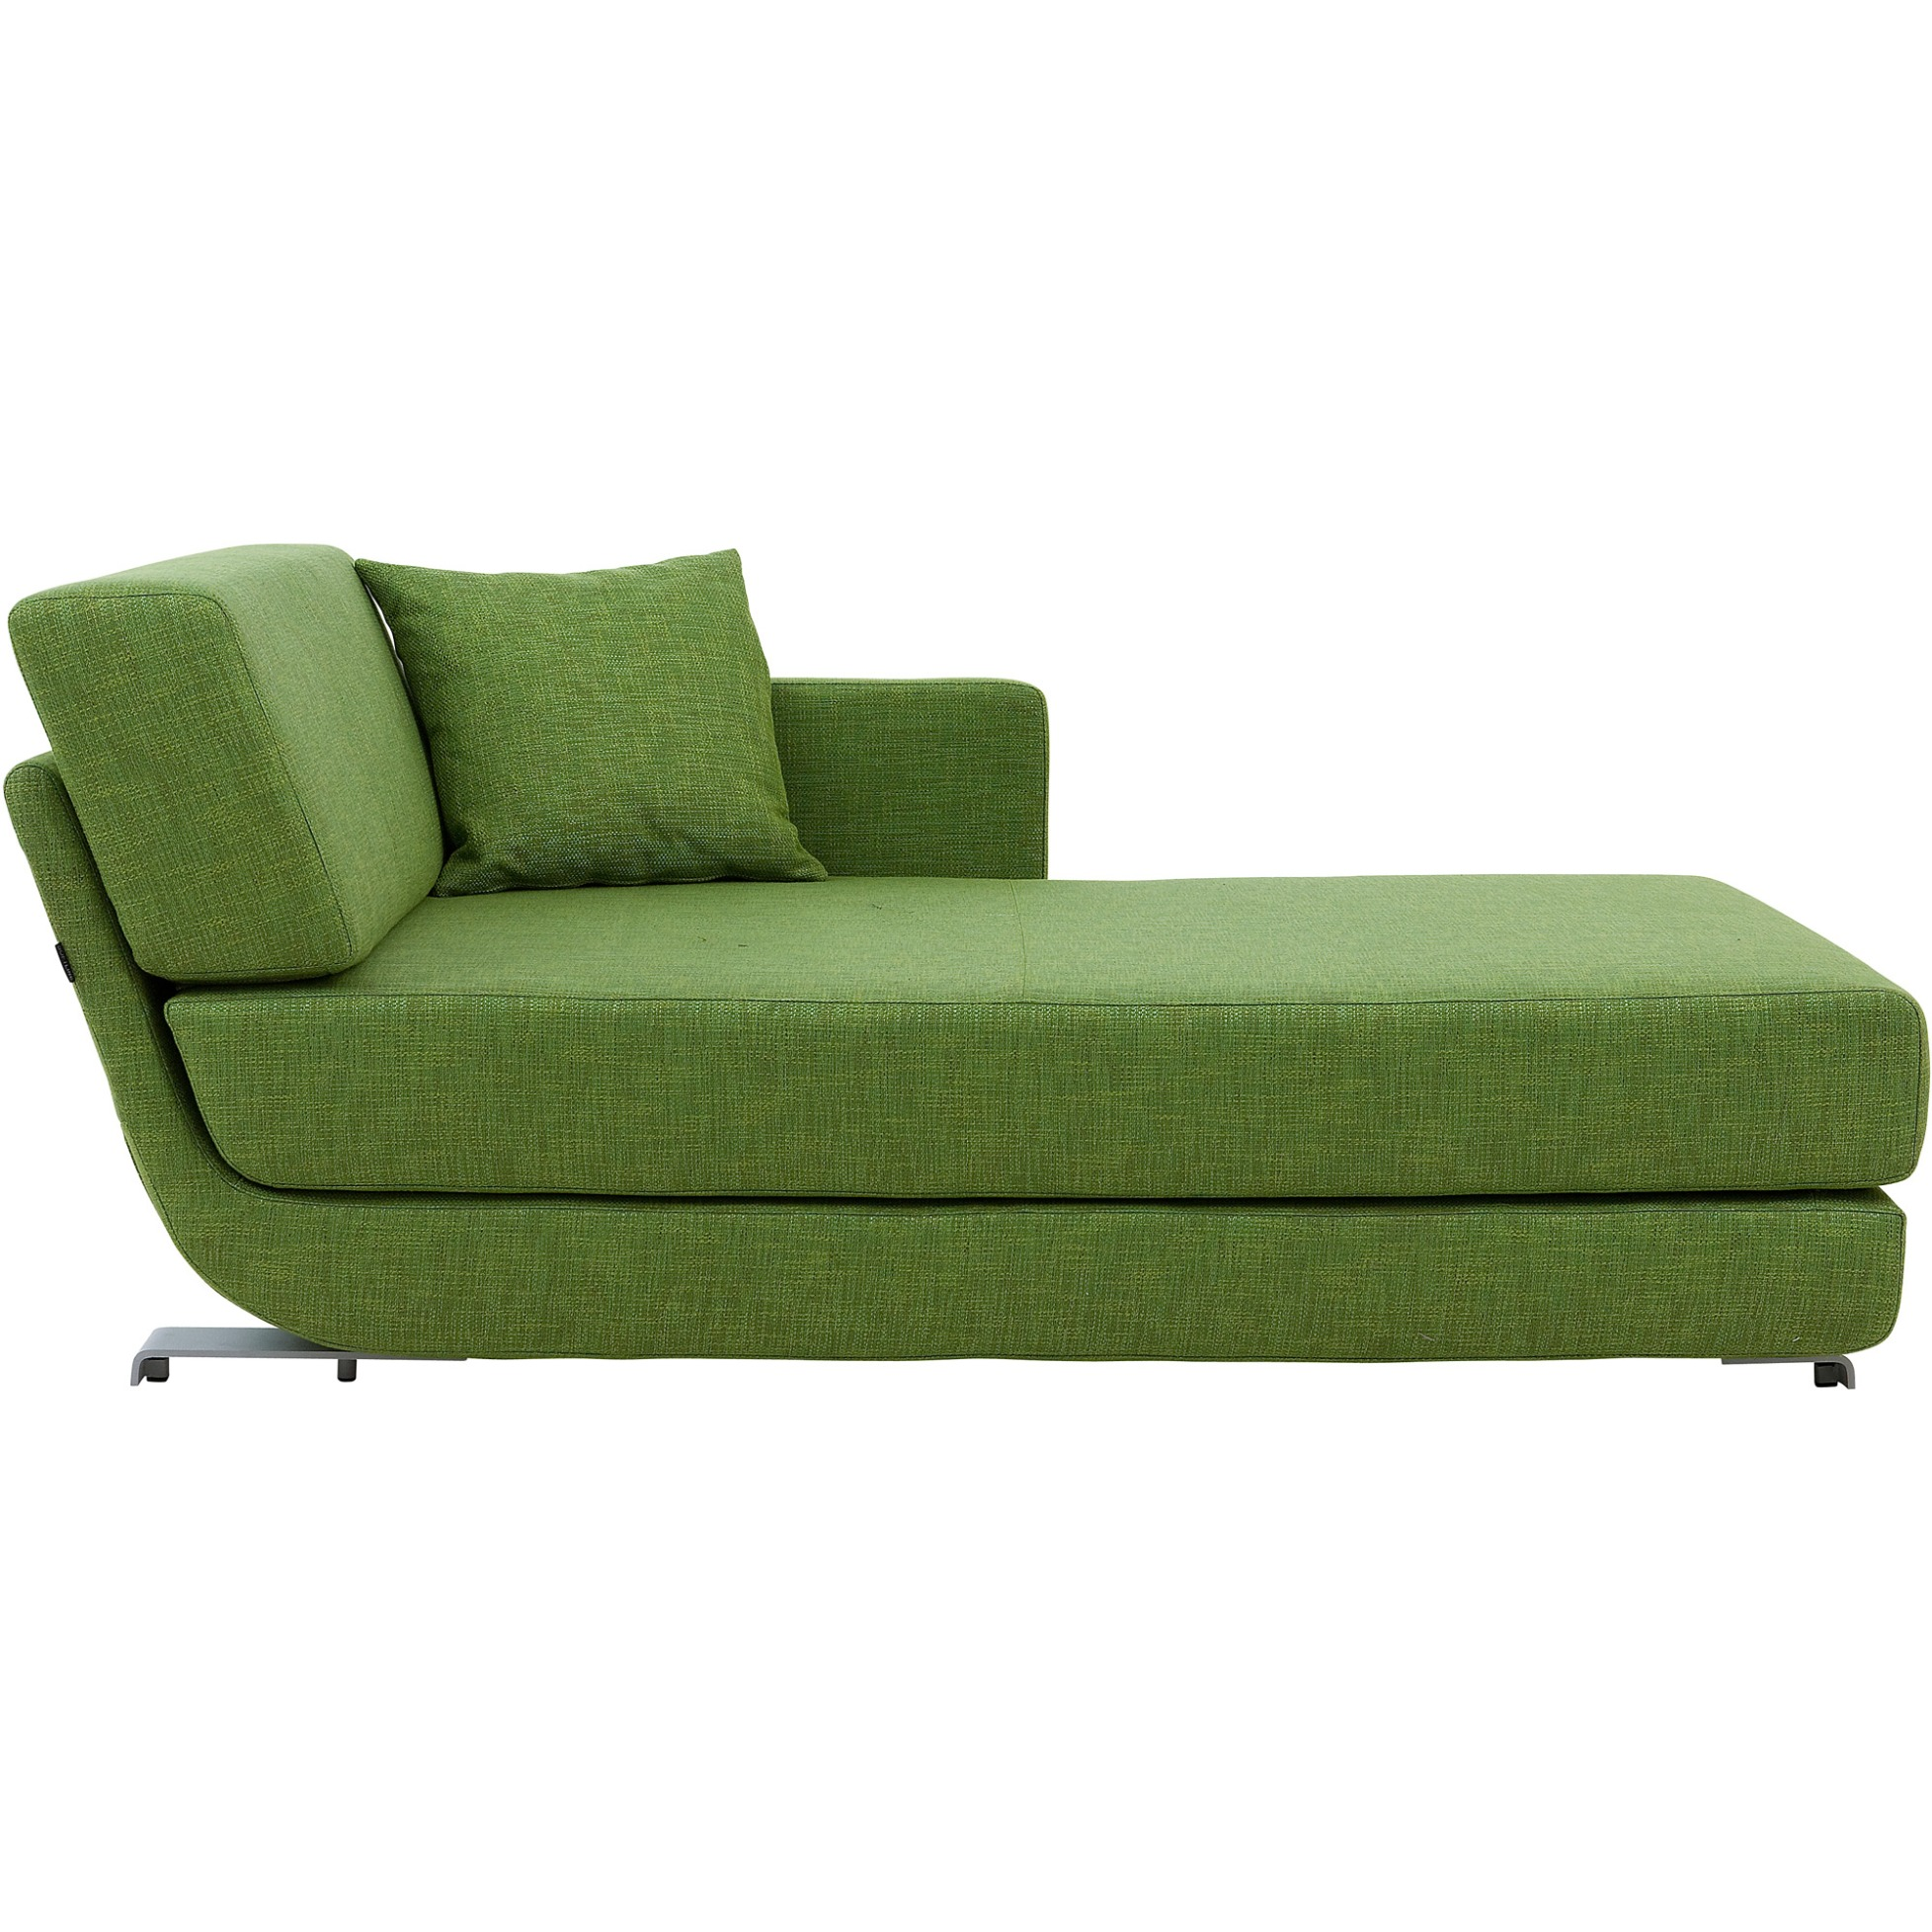 Chaise Longue Chaiselongue Lounge Von Softline